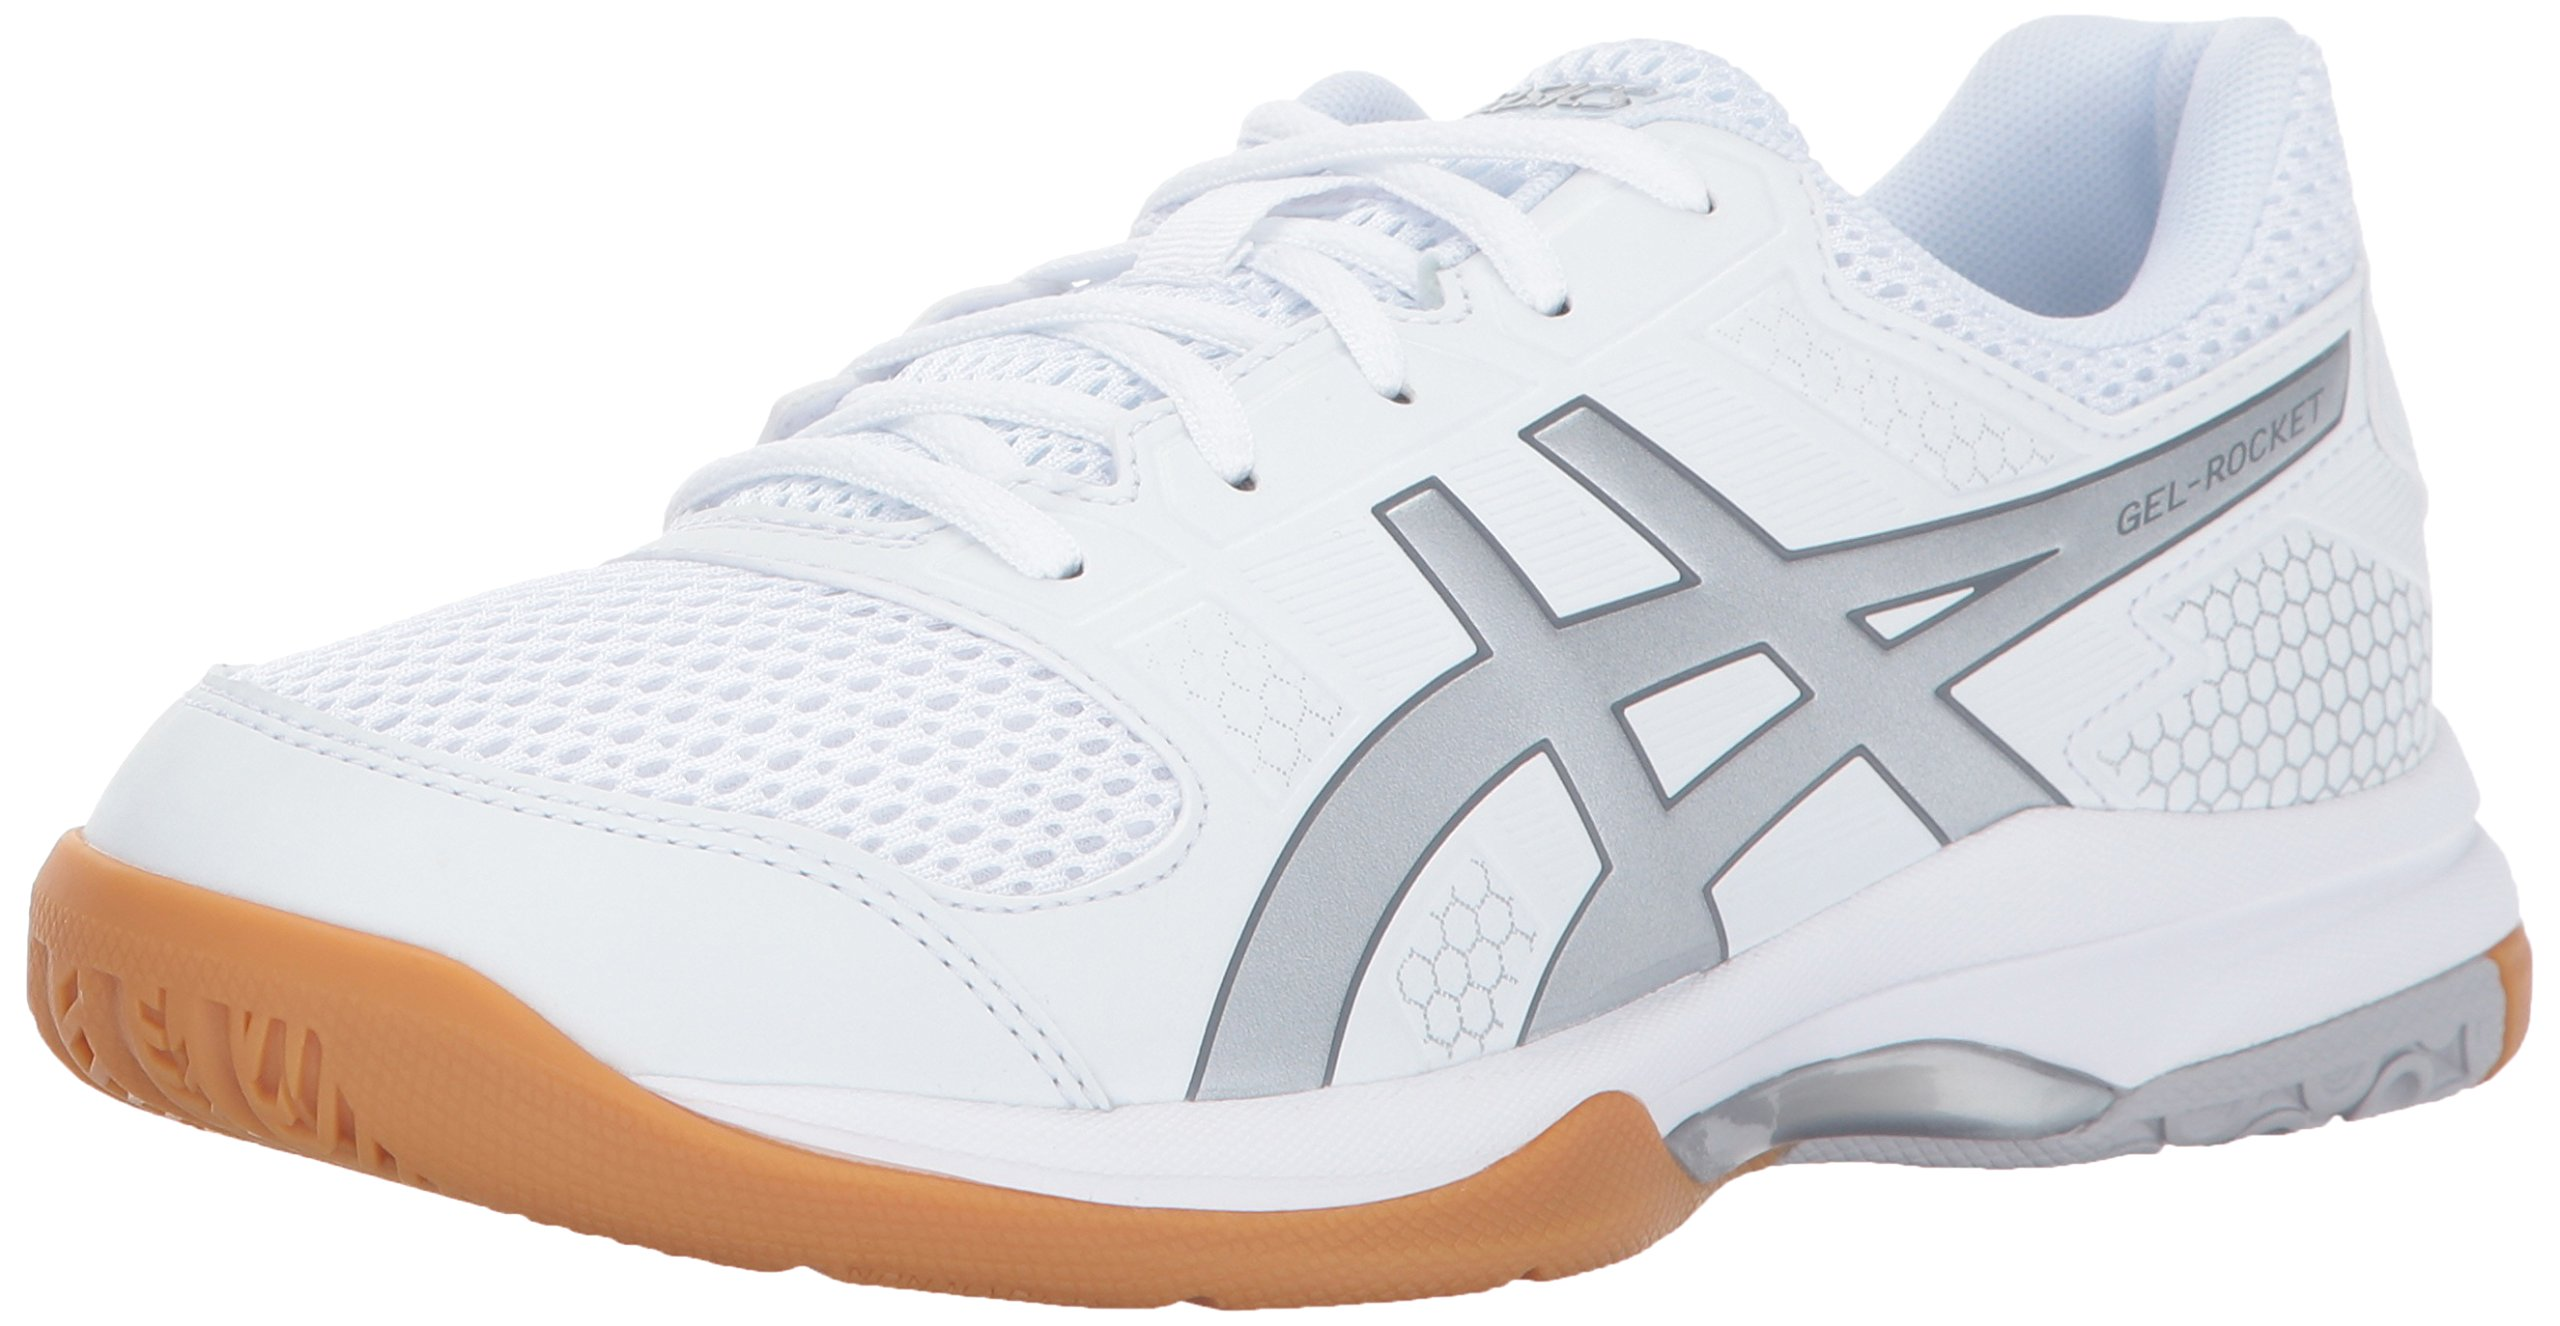 ASICS Womens Gel-Rocket 8 Volleyball Shoe, Silver/White, 10 Medium US by ASICS